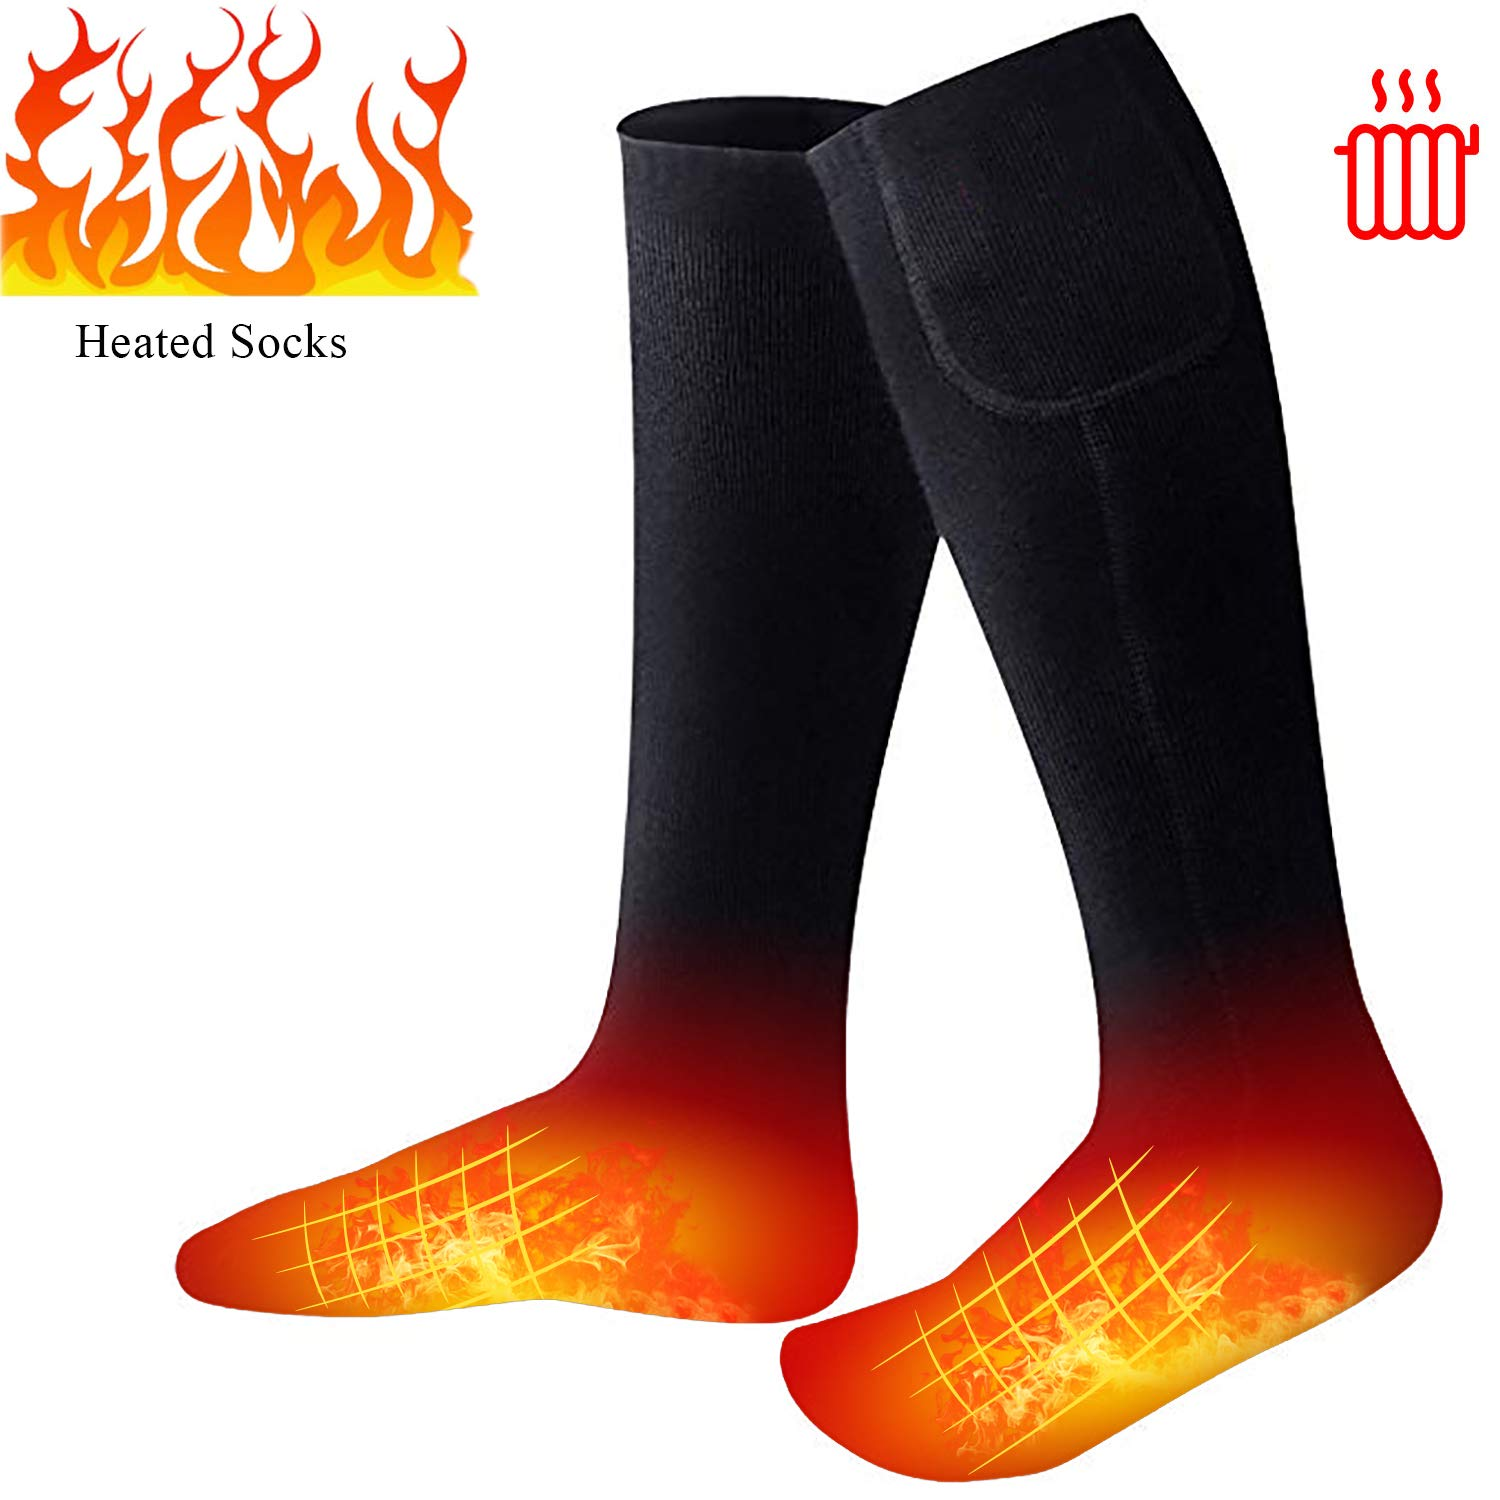 Missblue Heated Electric Warm Thermal Boot Socks,Rechargeable Battery Powered Winter Foot Warmers,Winter Heating Sox Chronically Feet(Battery not Included) (Black) by Missblue